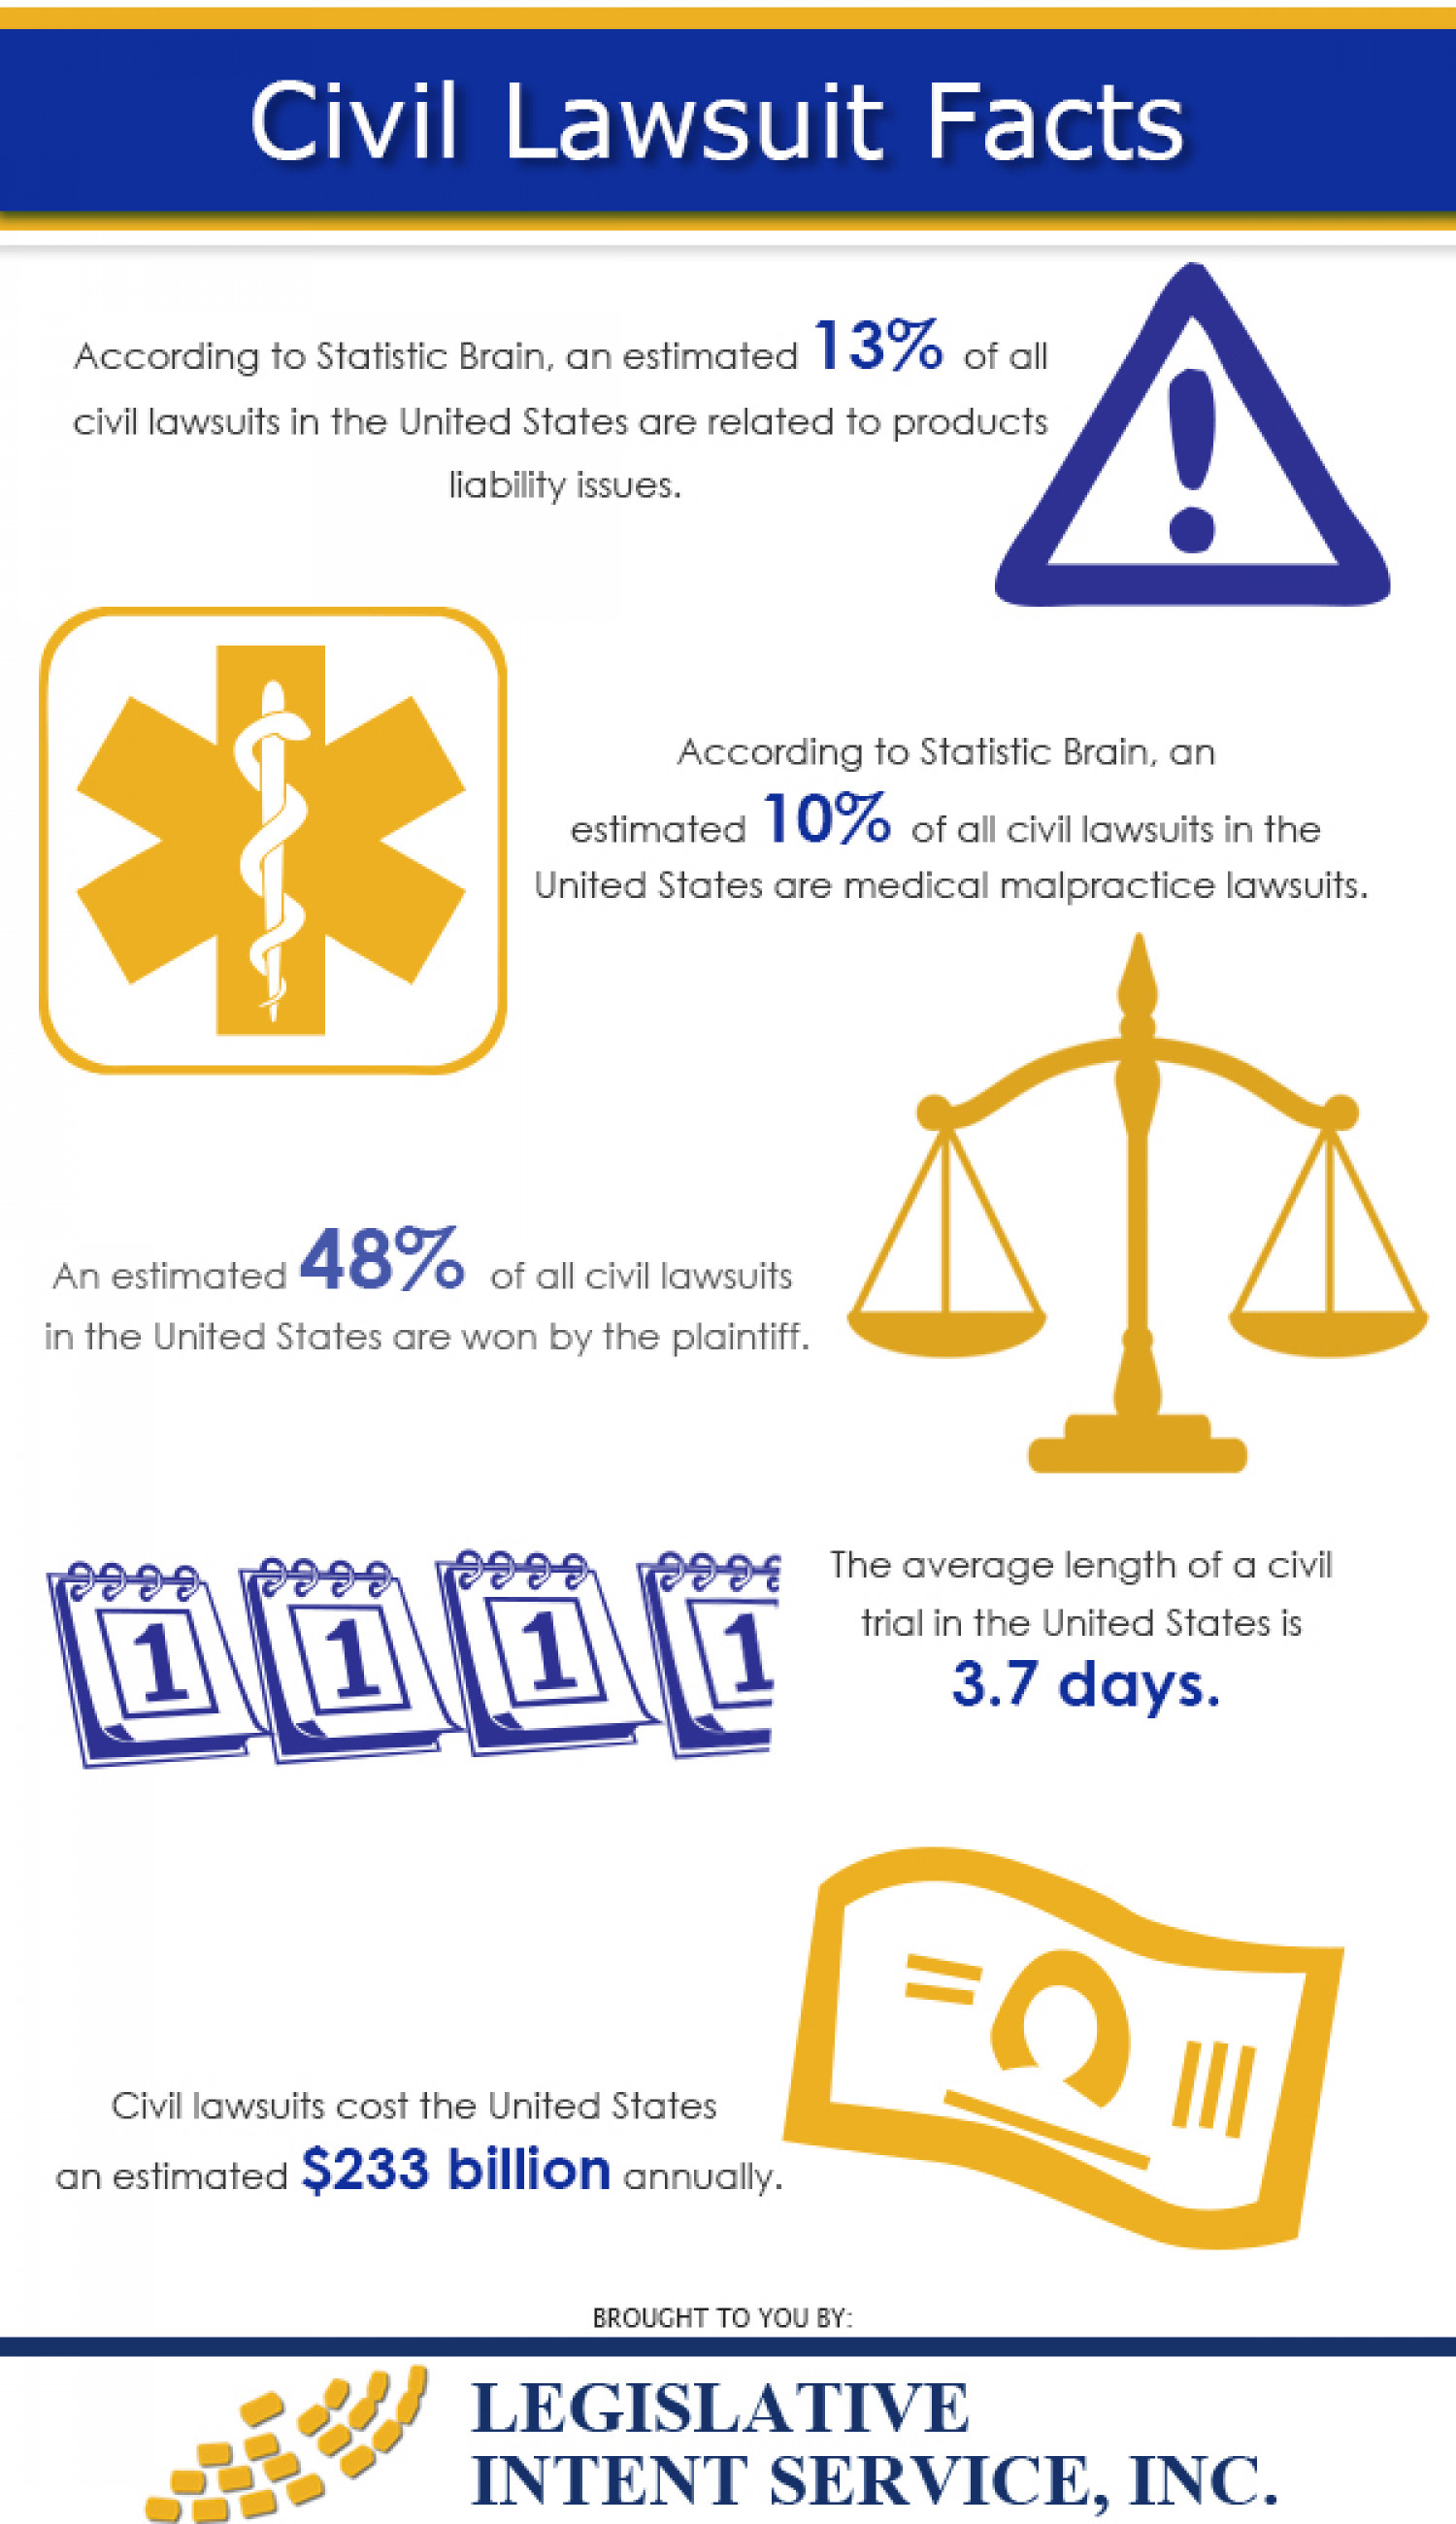 Civil Lawsuit Facts Infographic